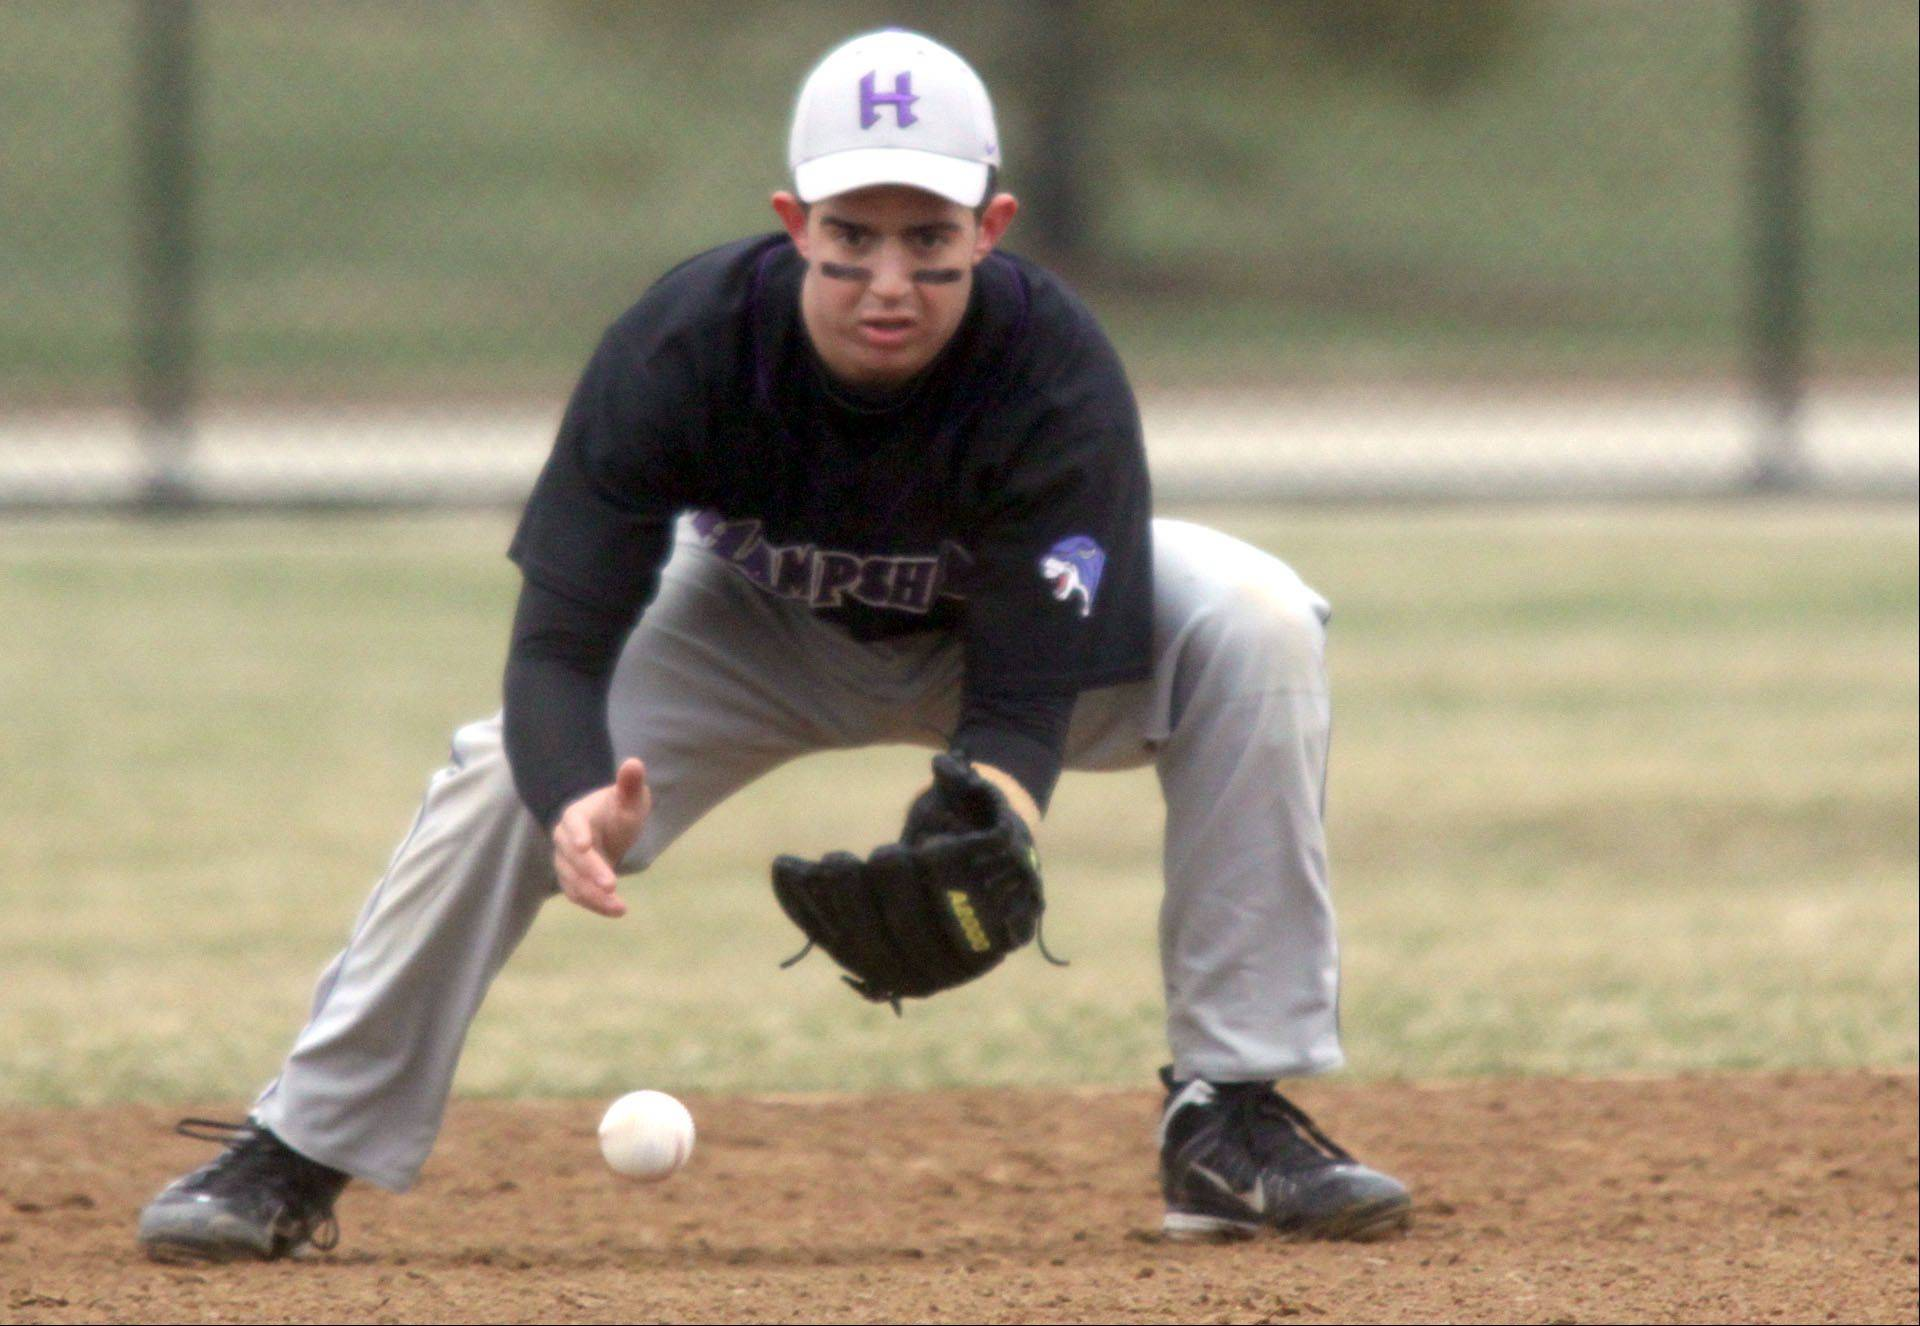 Hampshire's shortstop Michael Laramie gathers a grounder before firing to first base against Dundee-Crown's during a varsity baseball game at Carpentersville on Friday.